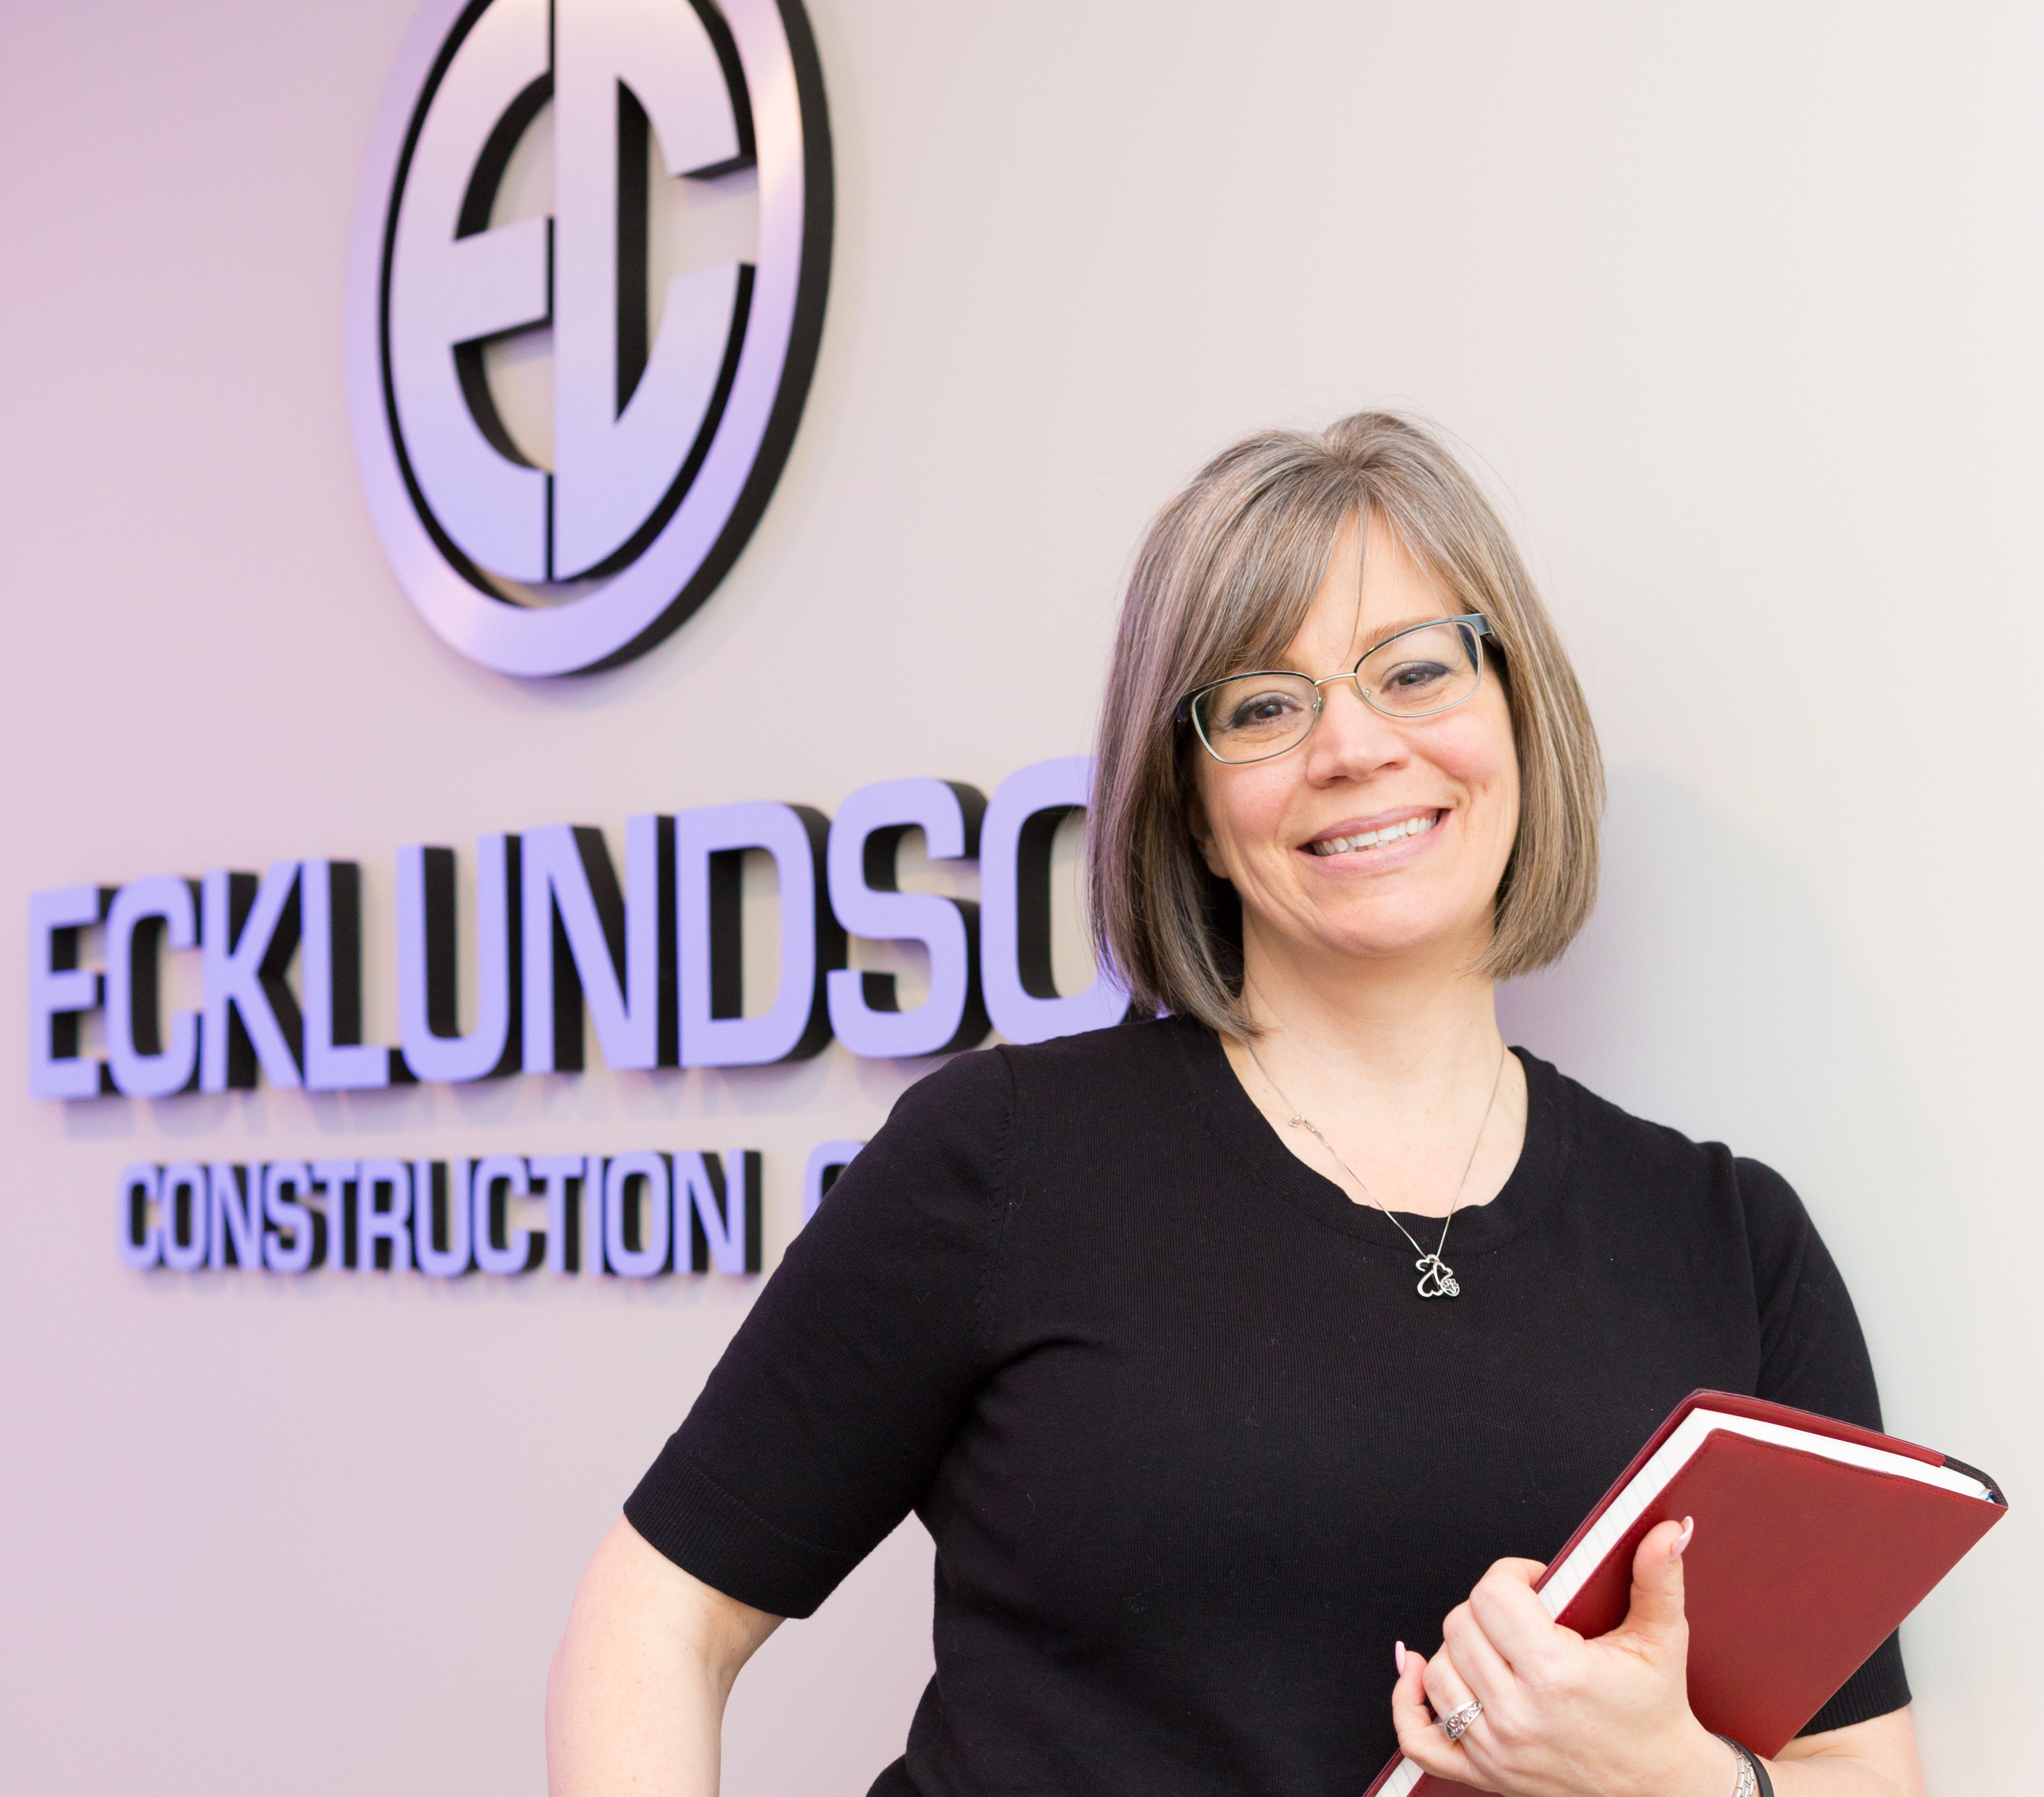 Ecklundson Construction Operations Manager Michelle Bates